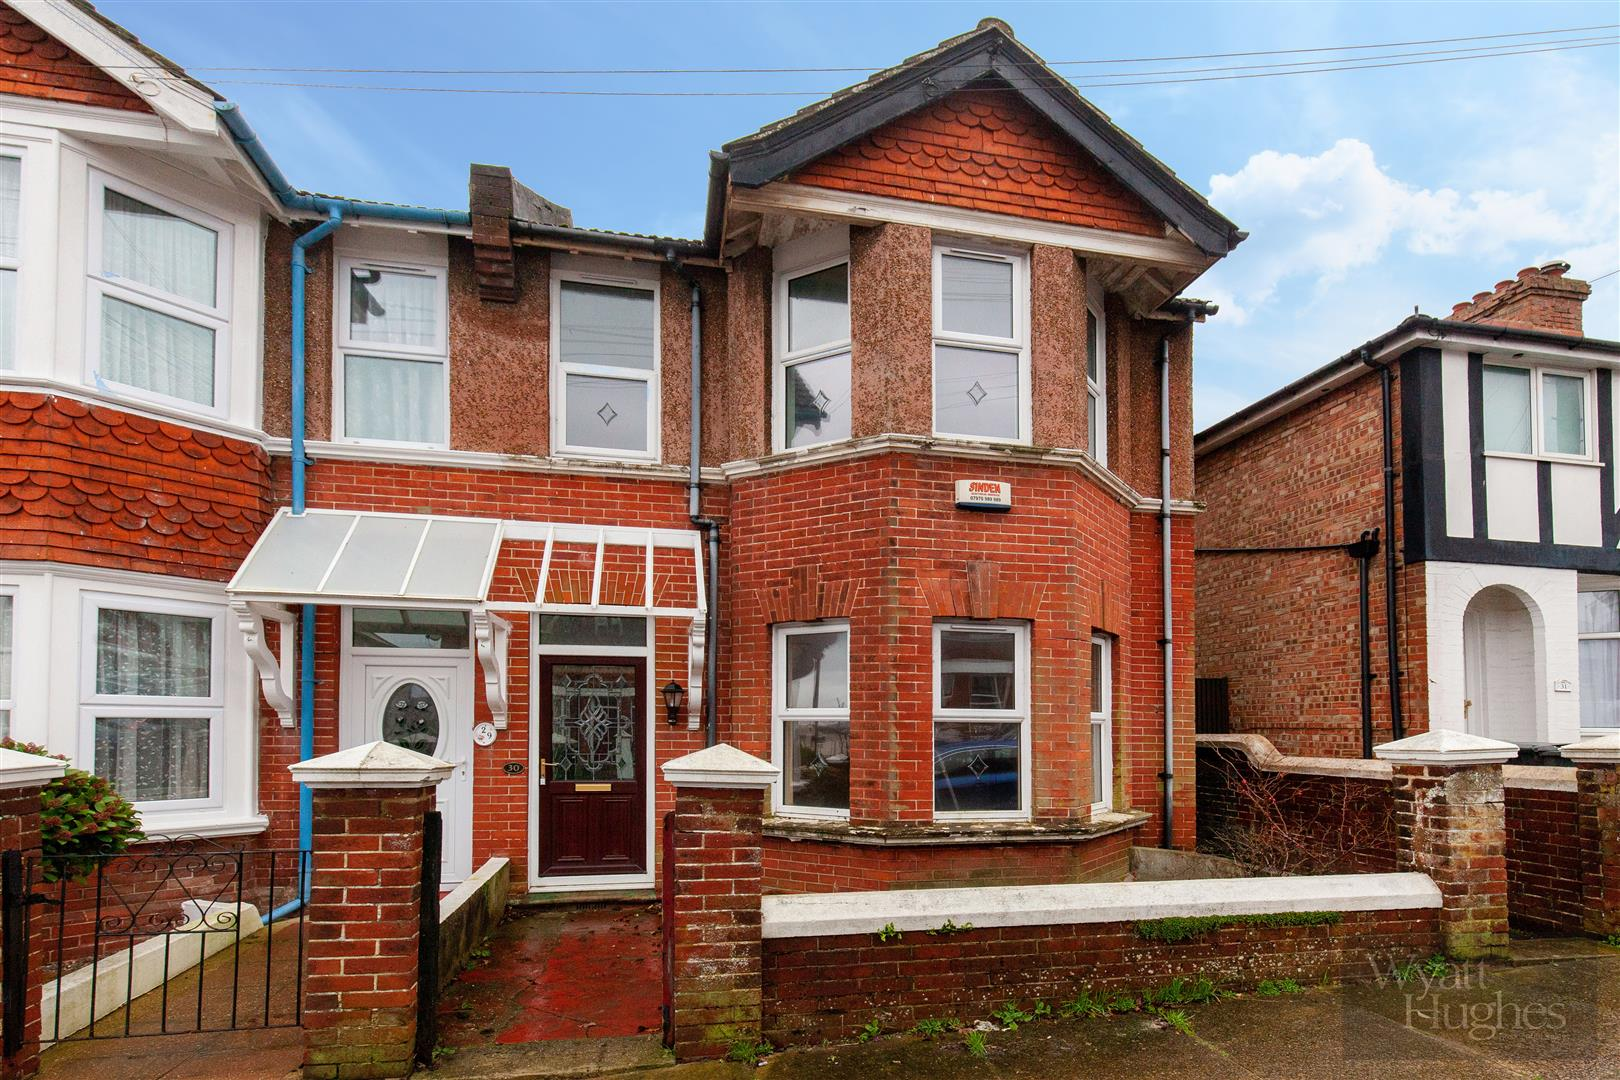 3 bed end-of-terrace-house for sale in Burry Road, St. Leonards-On-Sea  - Property Image 25